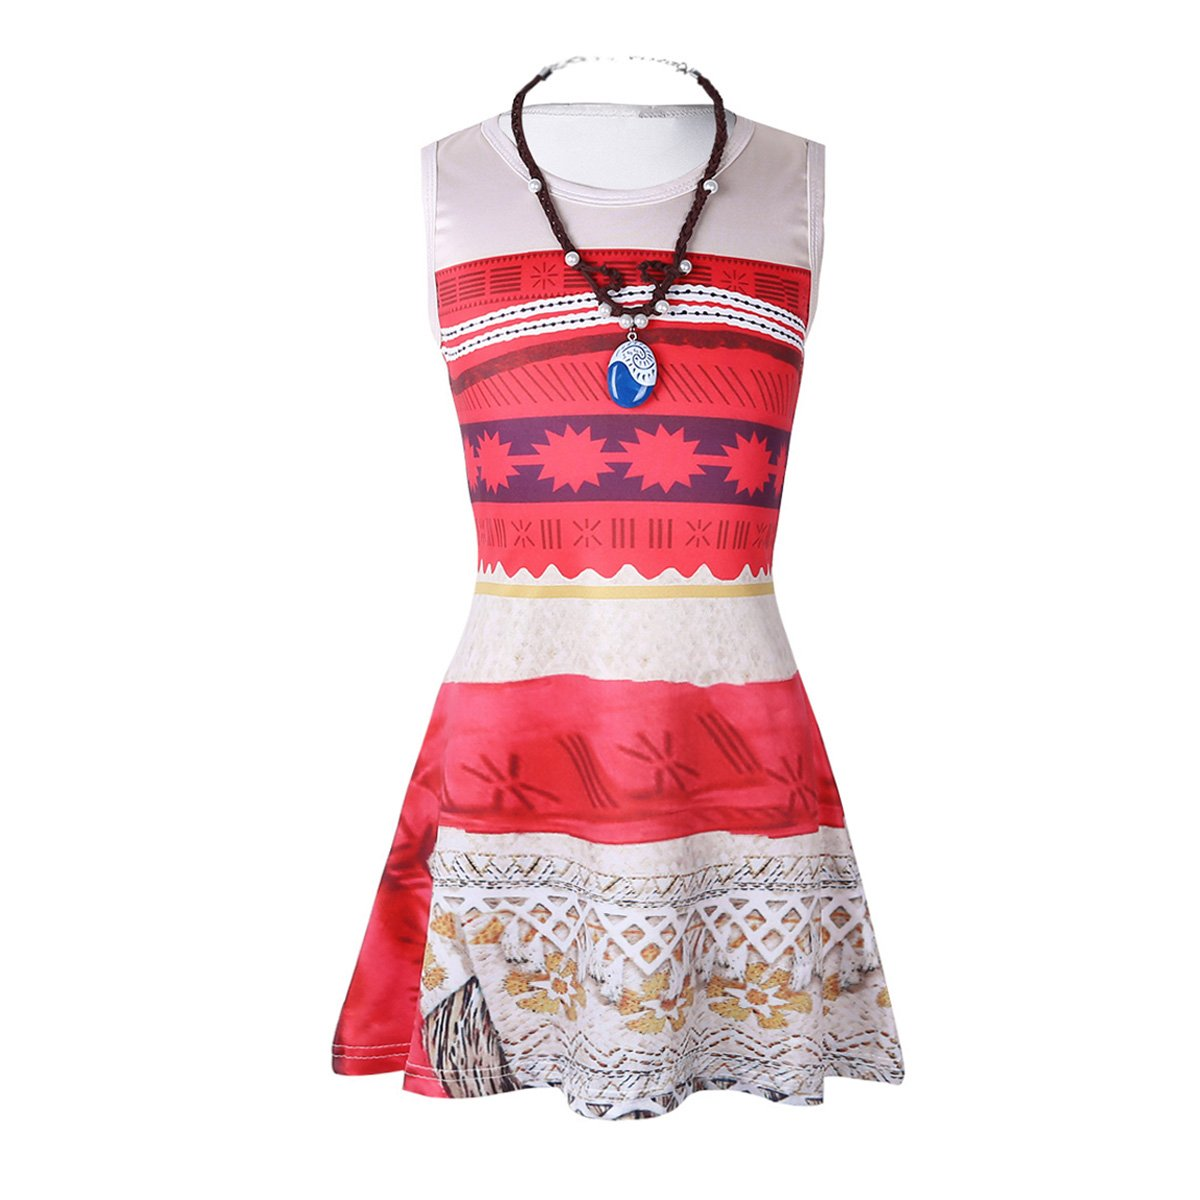 Red With Necklace iEFiEL Girls Costume Swimsuit Bathing Suit Summer Beachwear Adventure Outfit Party Cosplay Dress Up